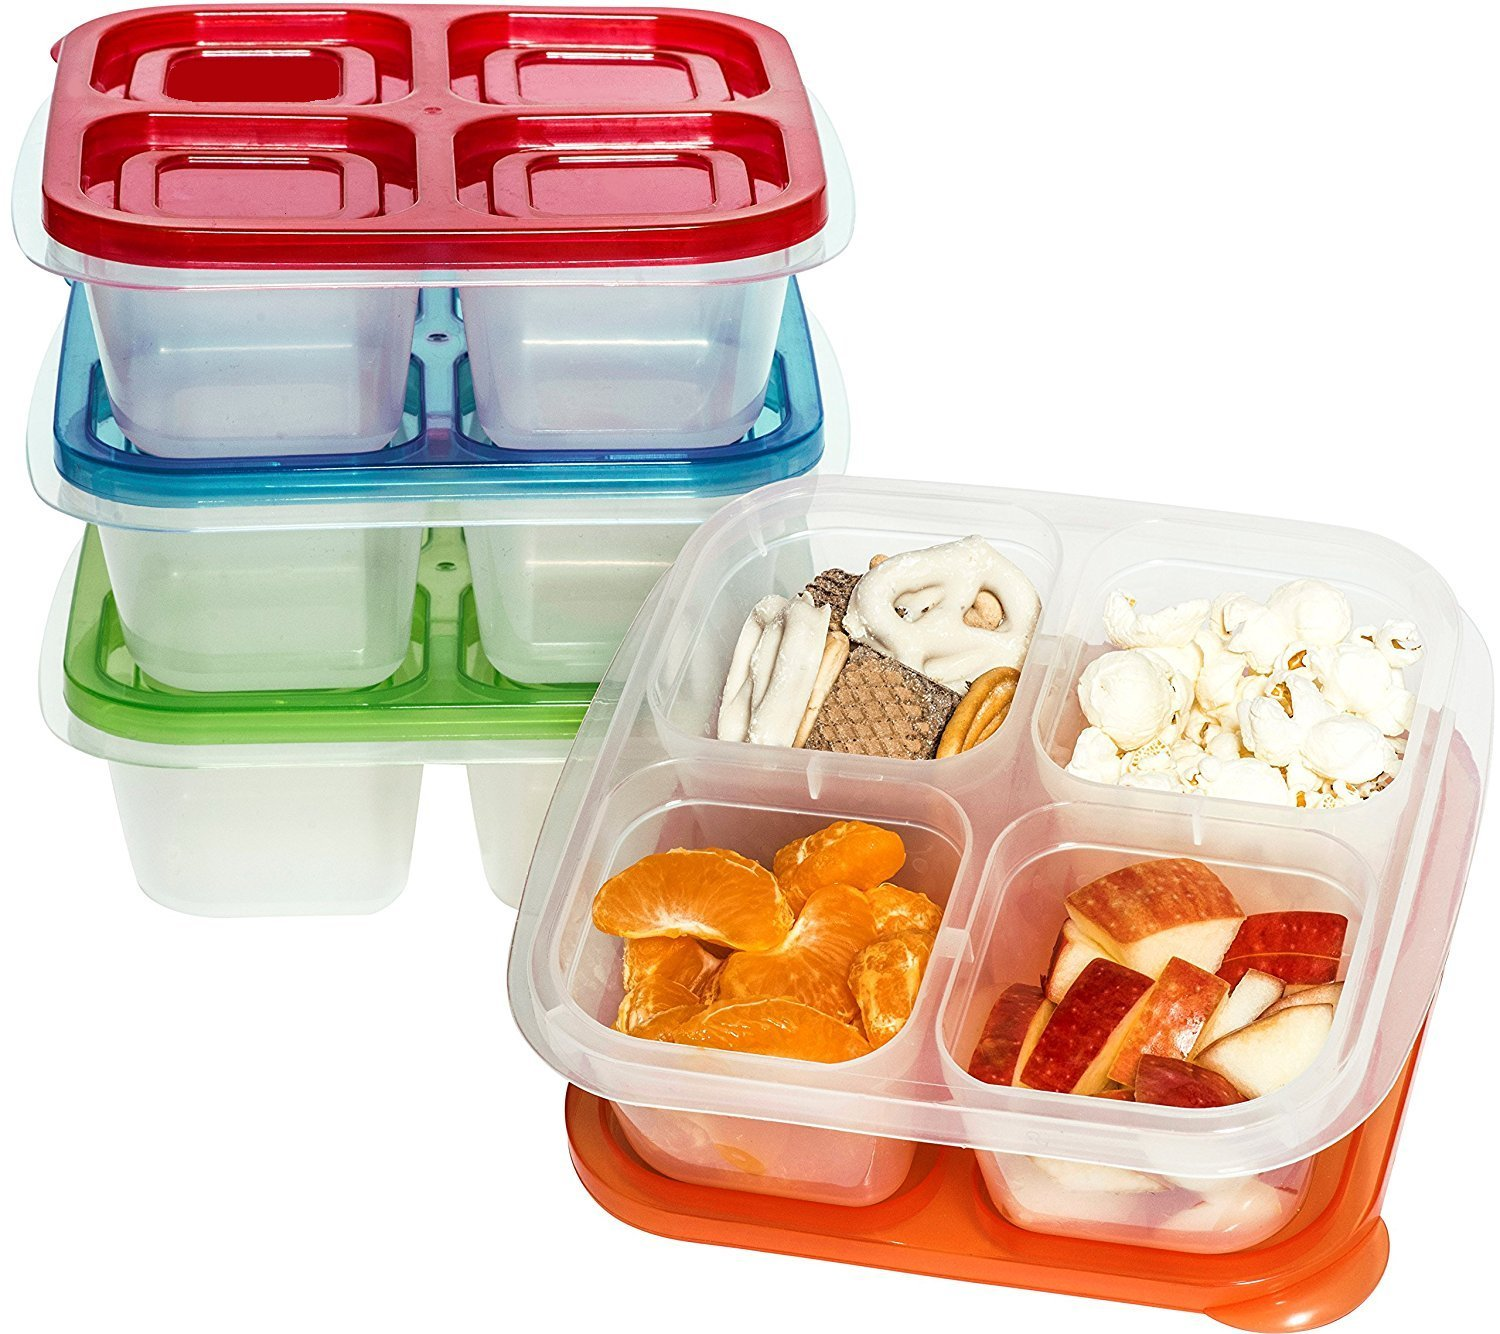 4 Compartment with Lids - Lunch Box - 4 Compartment Snack Box